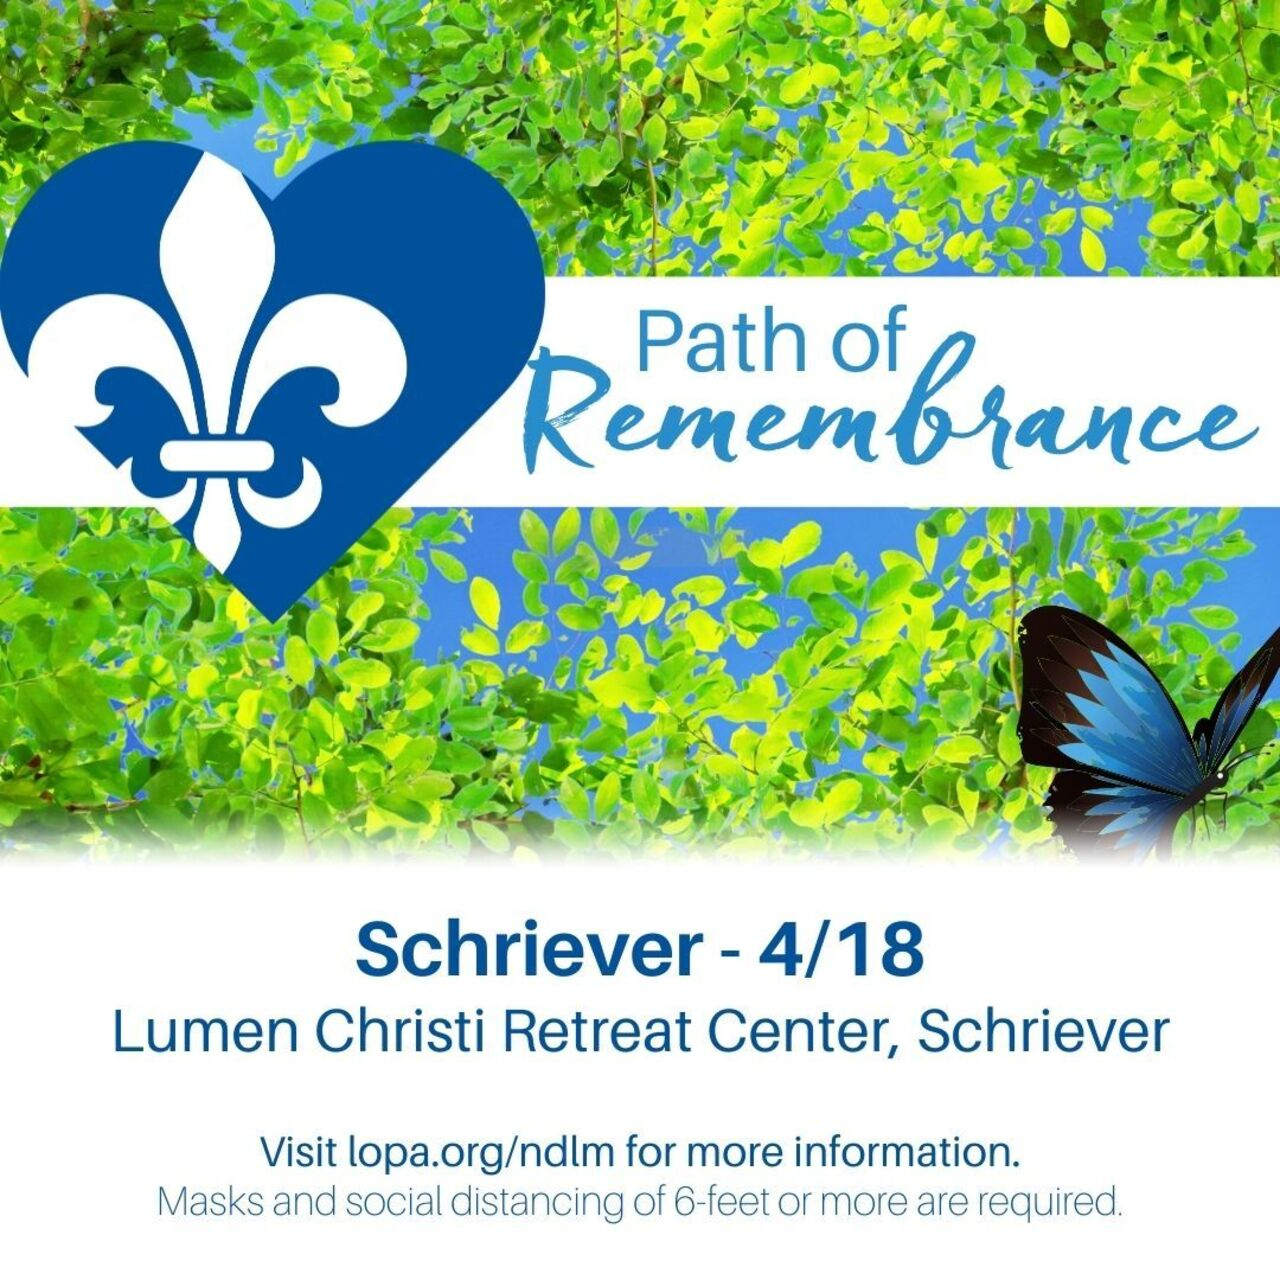 Schriever Path of Remembrance 2021 (copy)